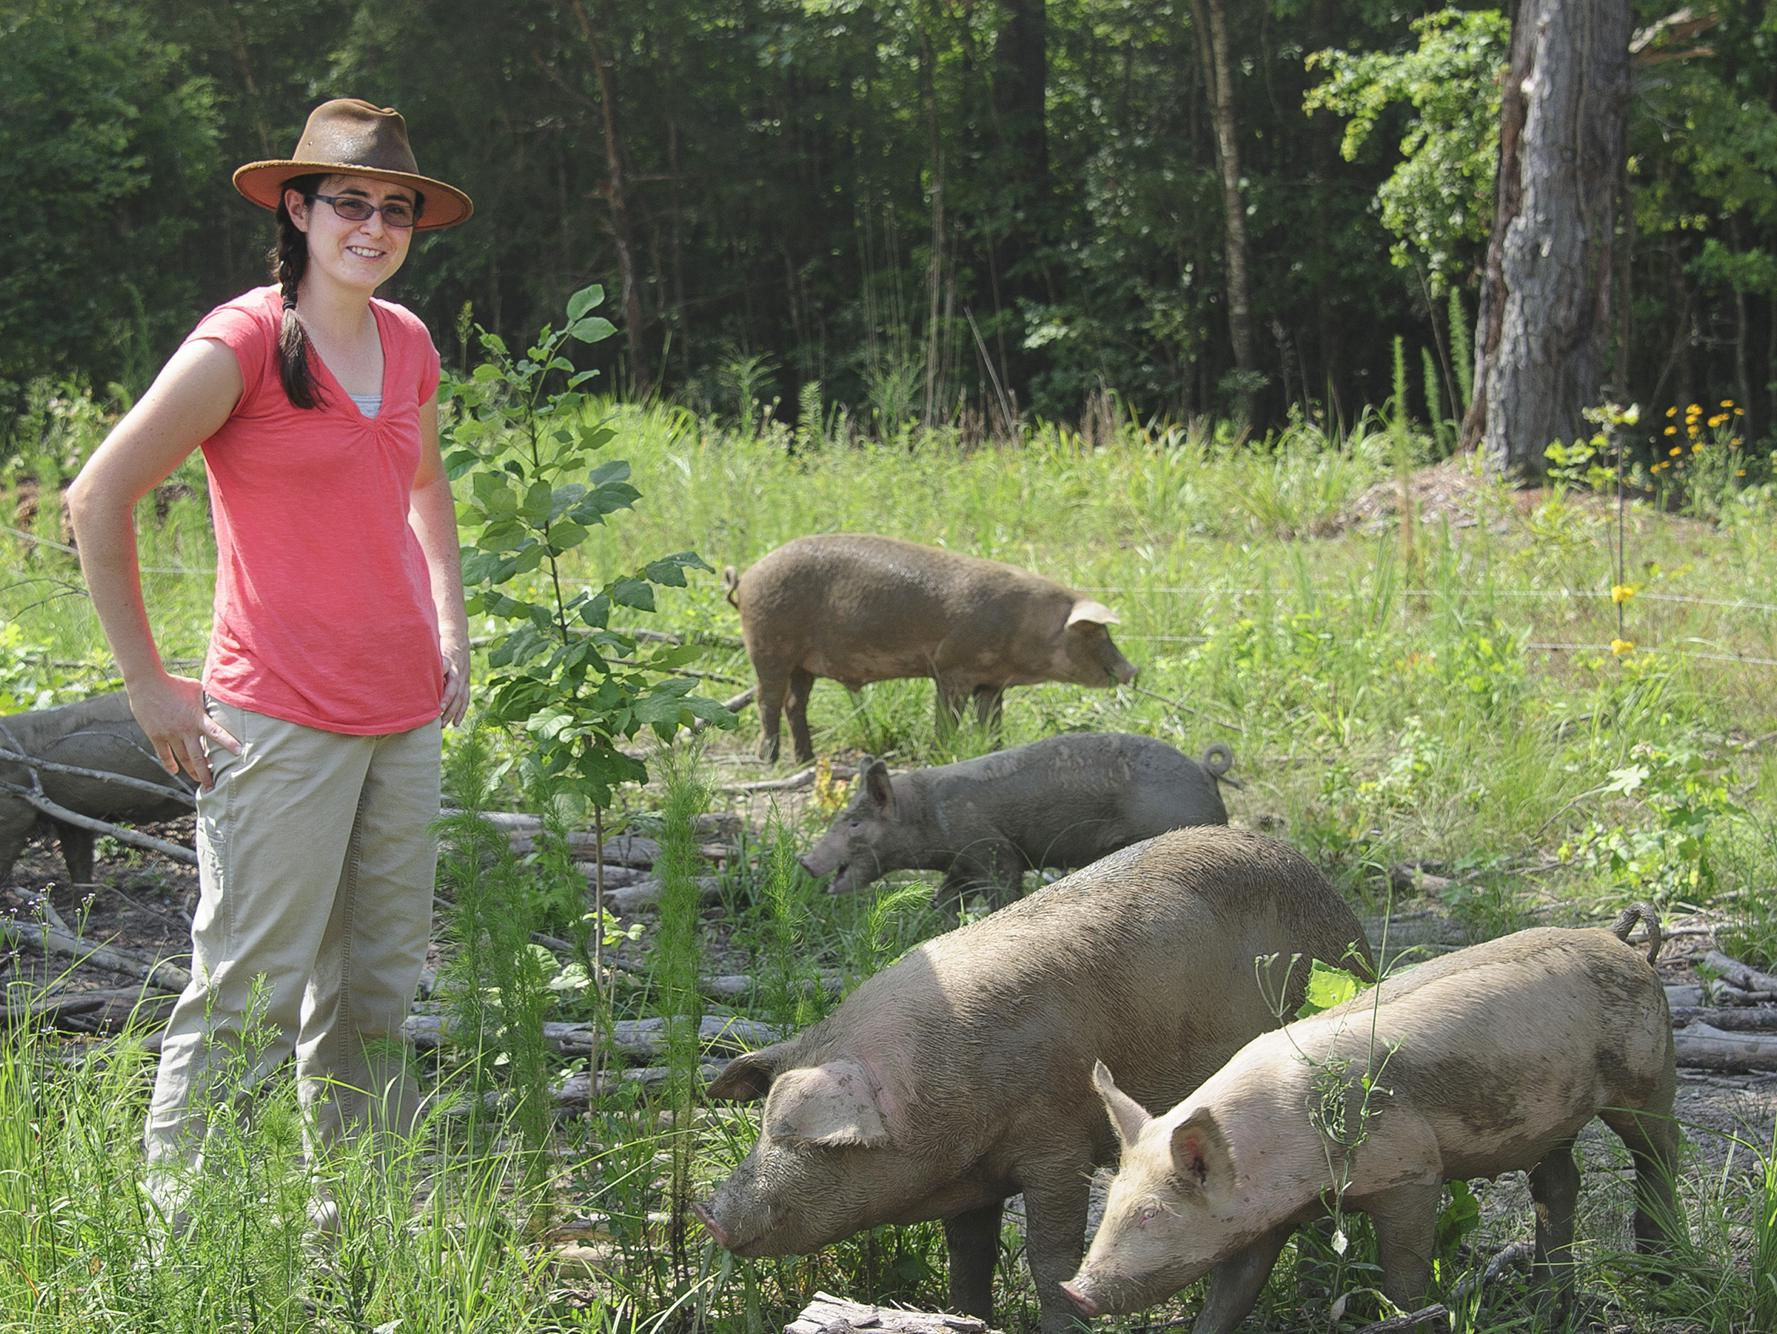 Ali Fratesi Pinion raises pigs as a healthy source of local meat and manages them to benefit the soil on her Clay County farm. (MSU Extension Service file photo/Kevin Hudson)